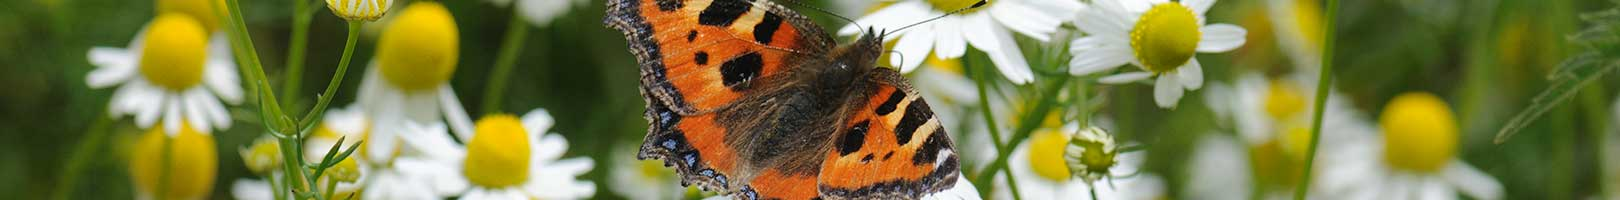 Header image - butterfly close up